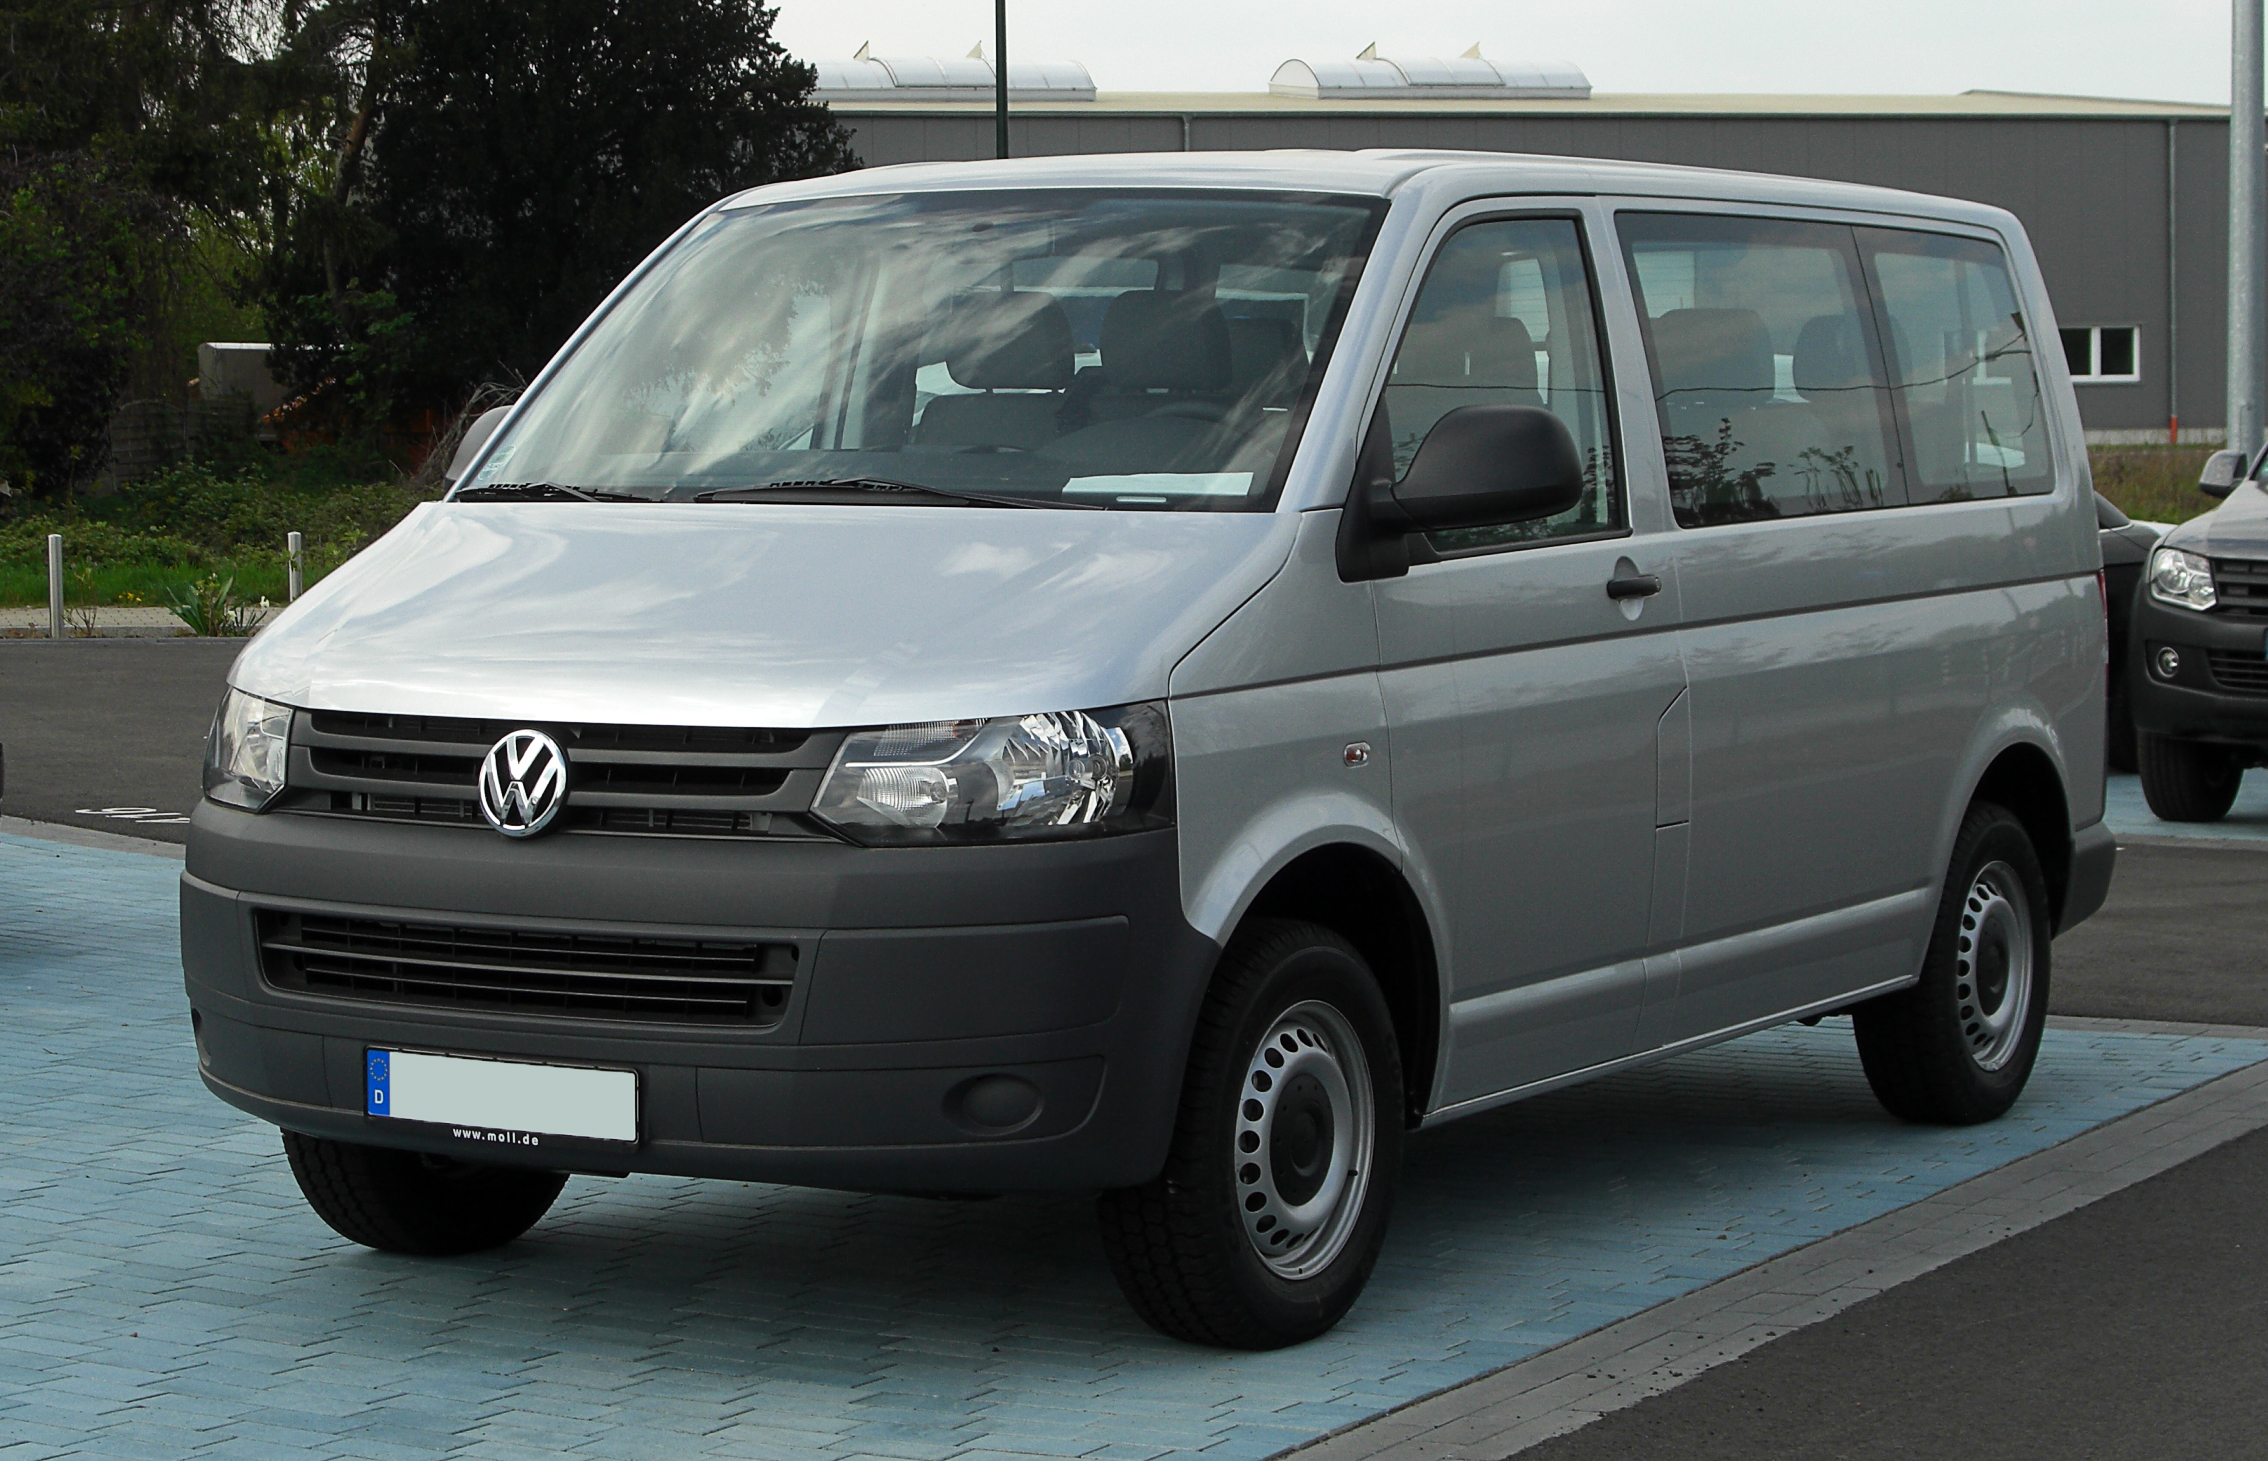 plik vw transporter kombi 2 0 tdi t5 facelift frontansicht 17 april 2011 d. Black Bedroom Furniture Sets. Home Design Ideas